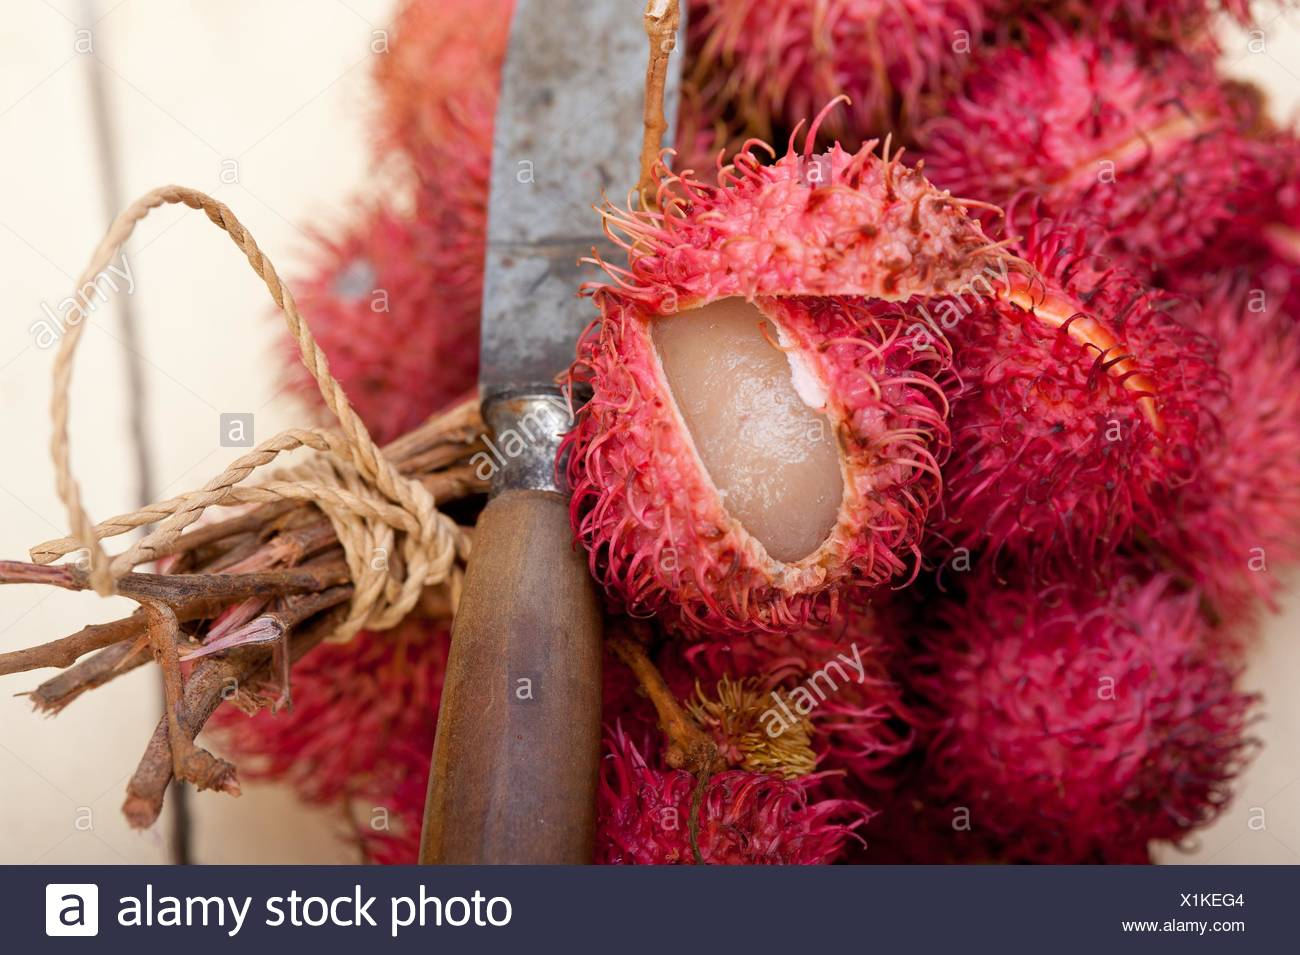 fresh tropical rambutan fruits over rustic wood table. Stock Photo